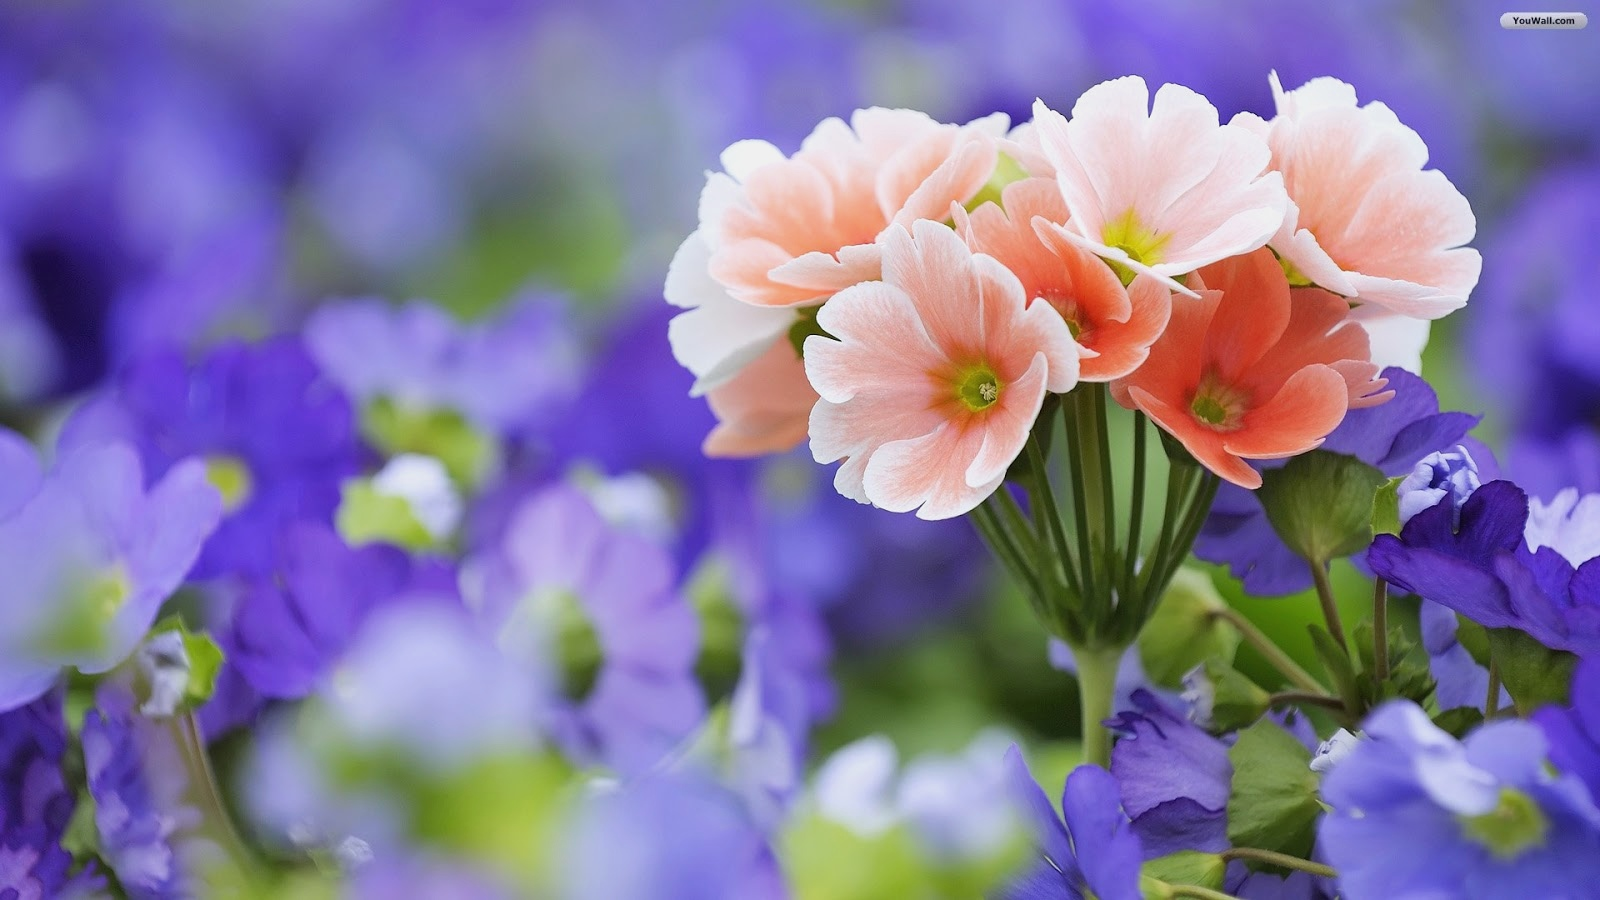 Beautiful Flowers Images Hd , HD Wallpaper & Backgrounds